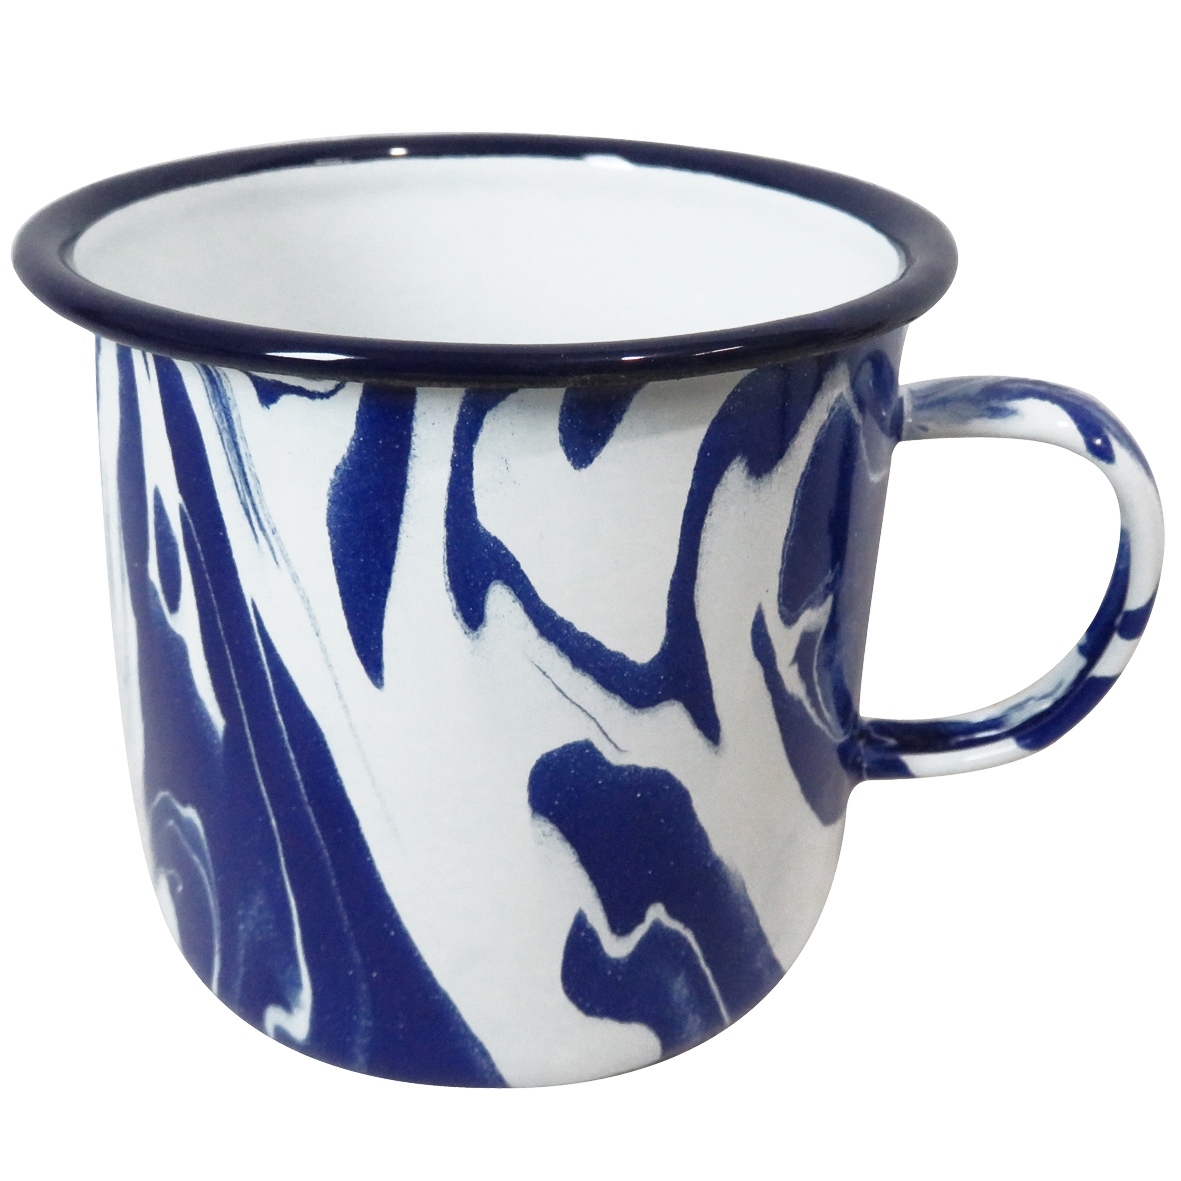 600ml Handmade Blue And White Marble Effect Enamel Mug Featuring Unique Design Ebay